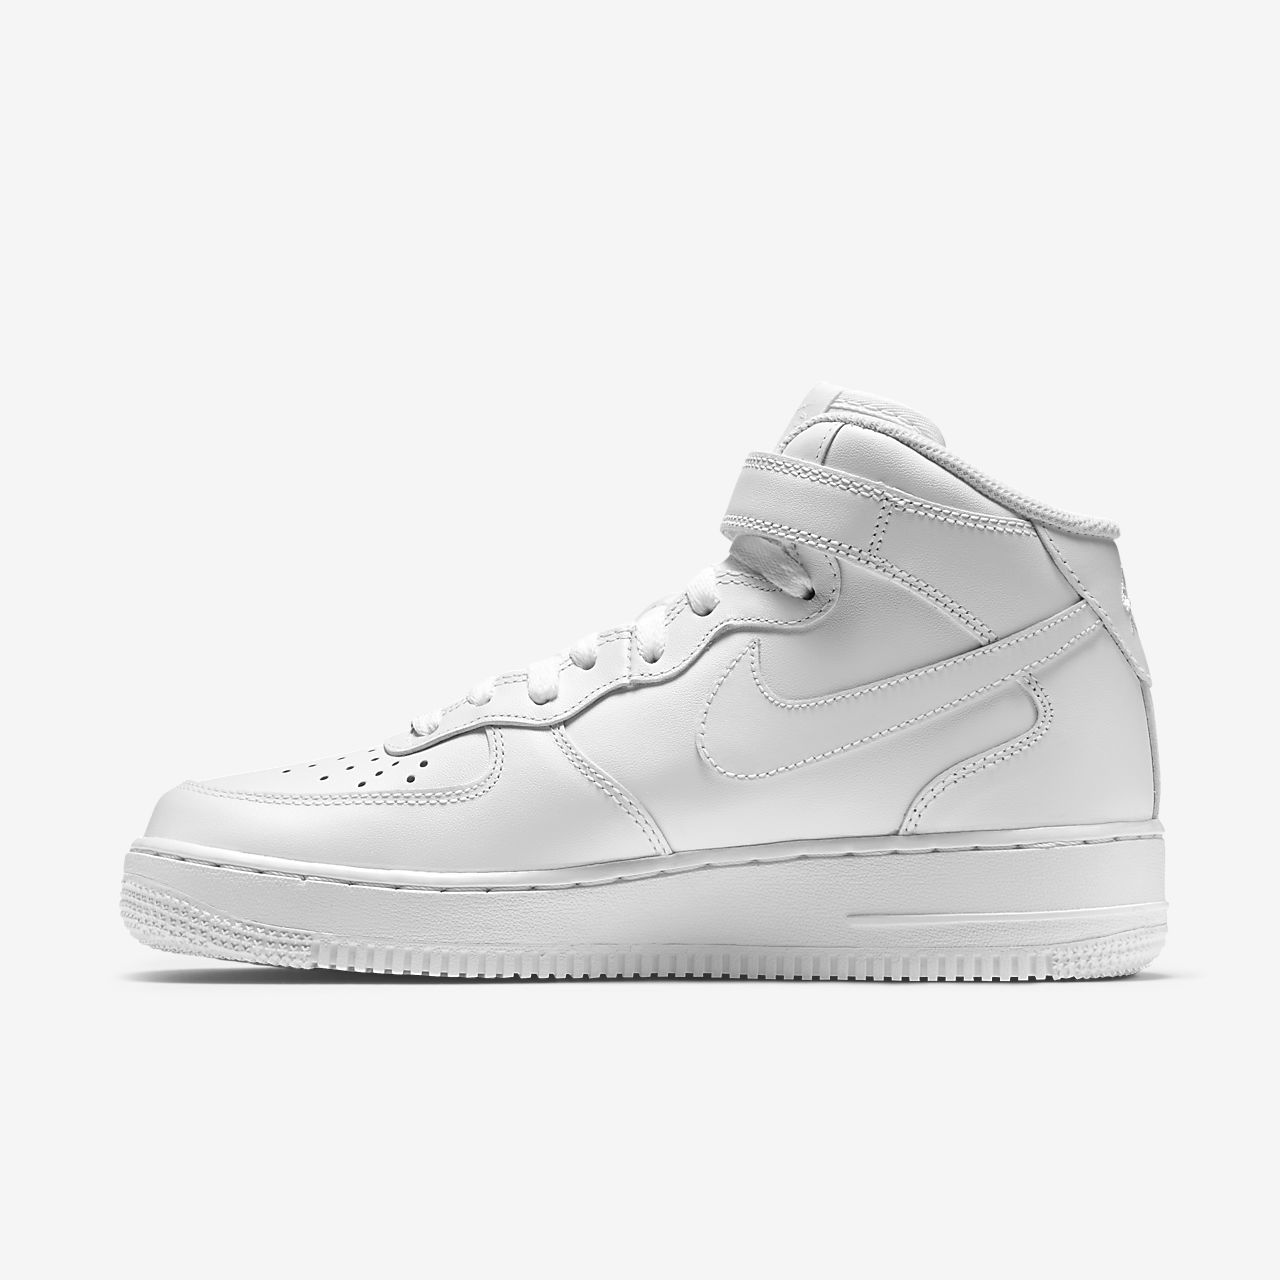 nike air force 1 mid '07 women's shoe nz